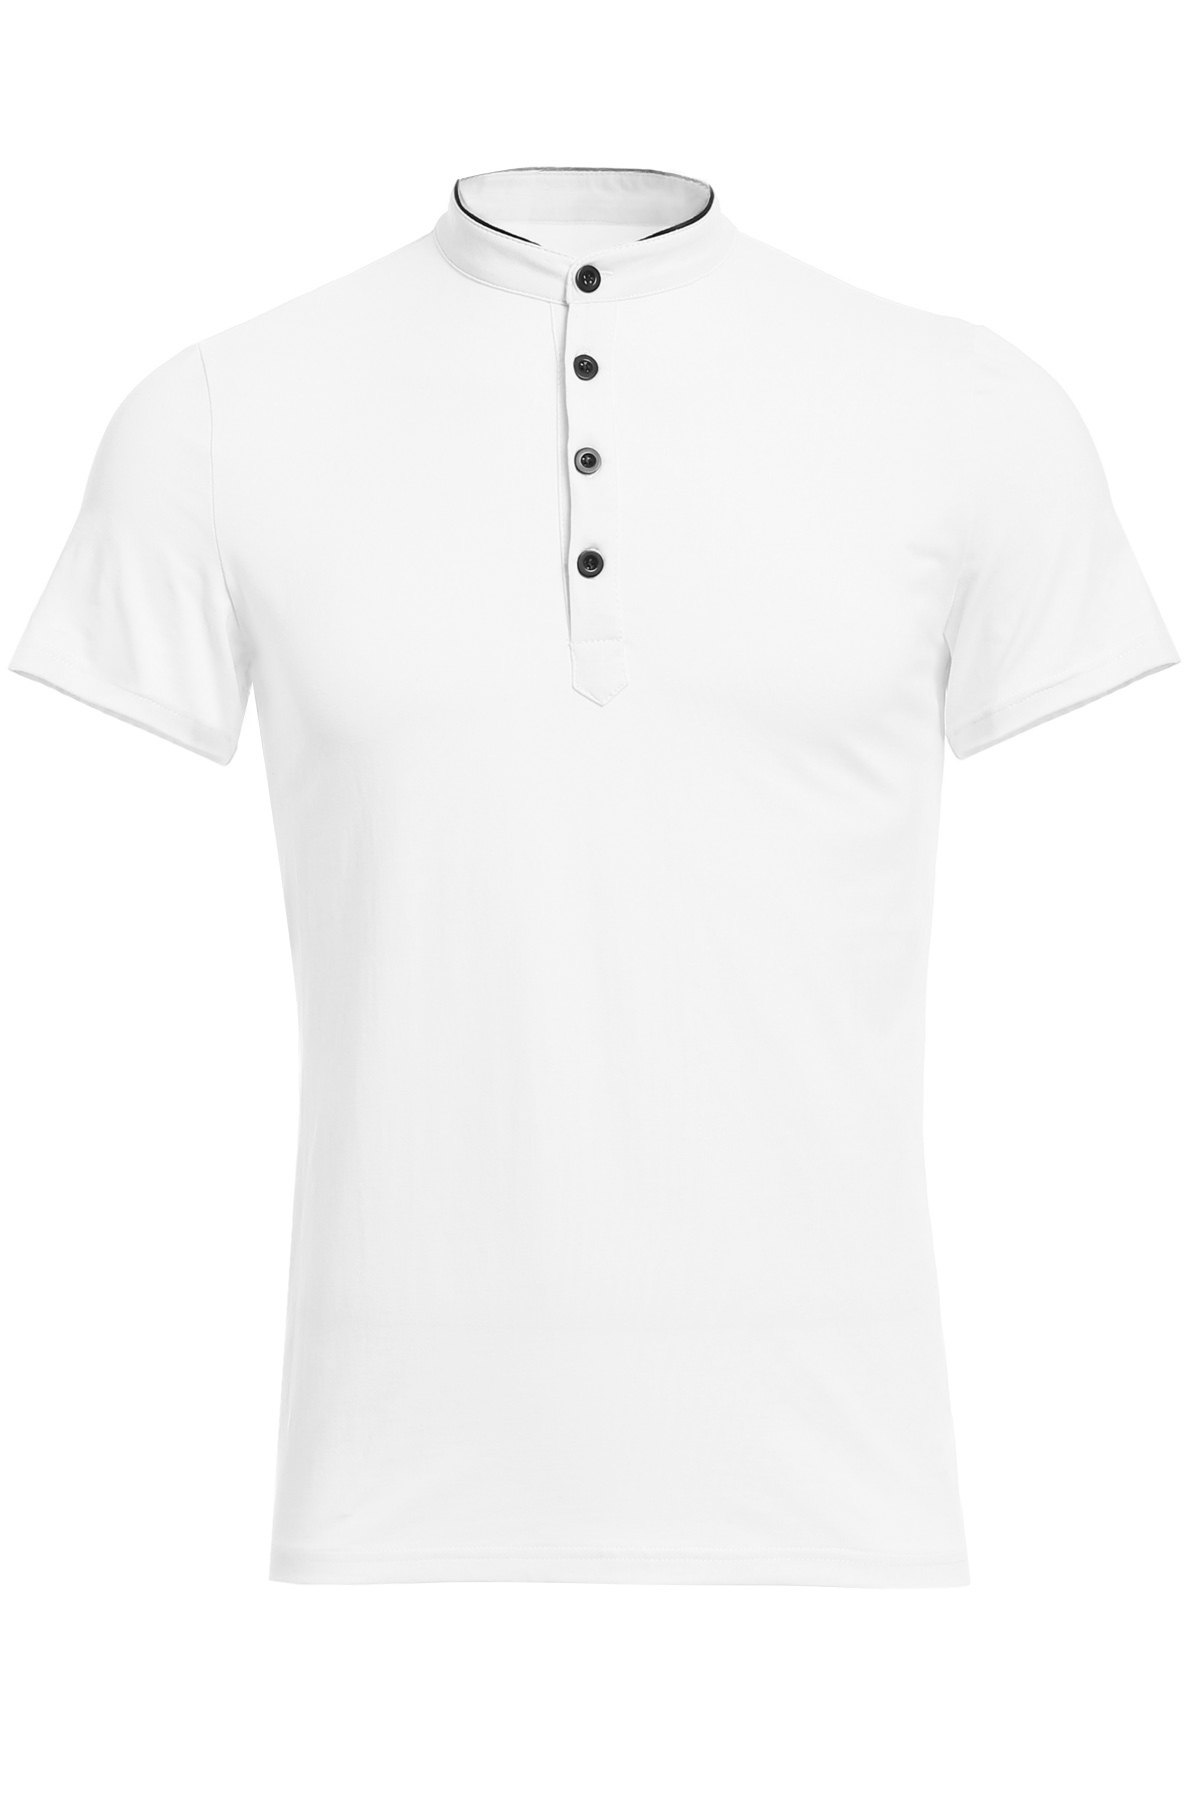 Vogue Stand Collar Multi-Button Color Spliced Short Sleeves Men's Polo T-Shirt - WHITE 3XL